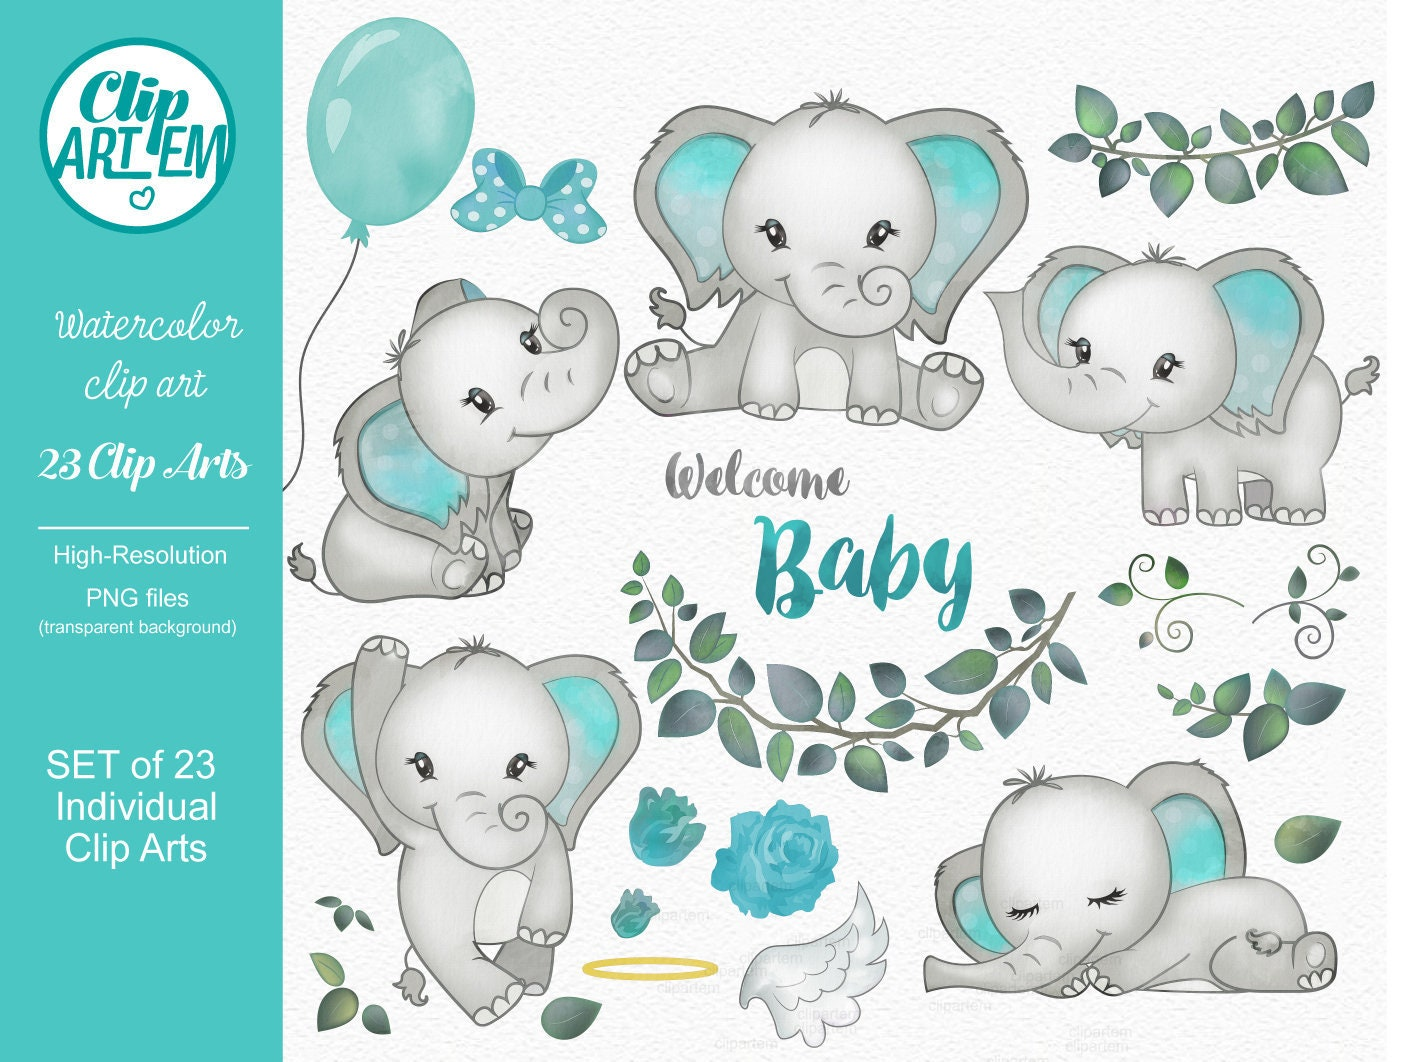 Turquoise Elephant clip art watercolor. Baby Elephant | Etsy